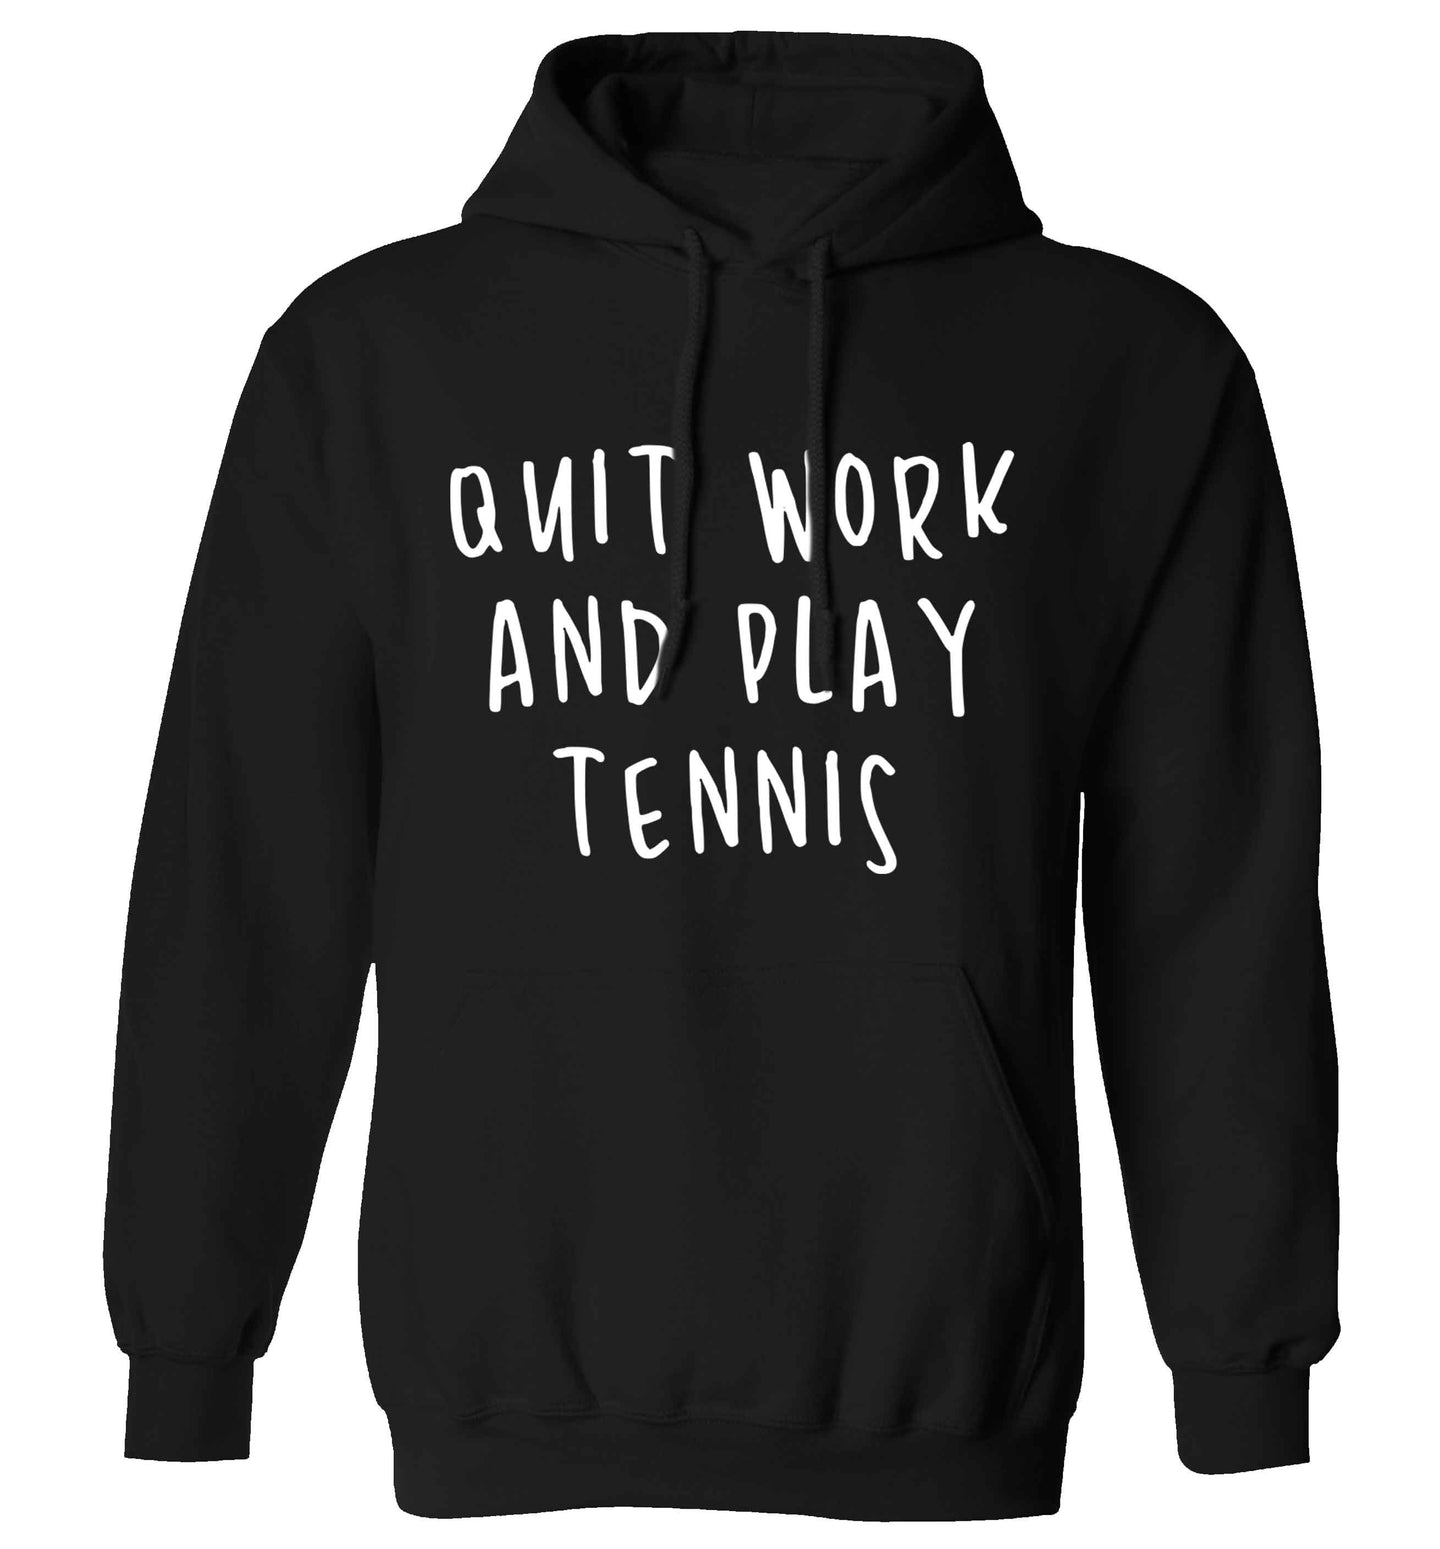 Quit work and play tennis adults unisex black hoodie 2XL